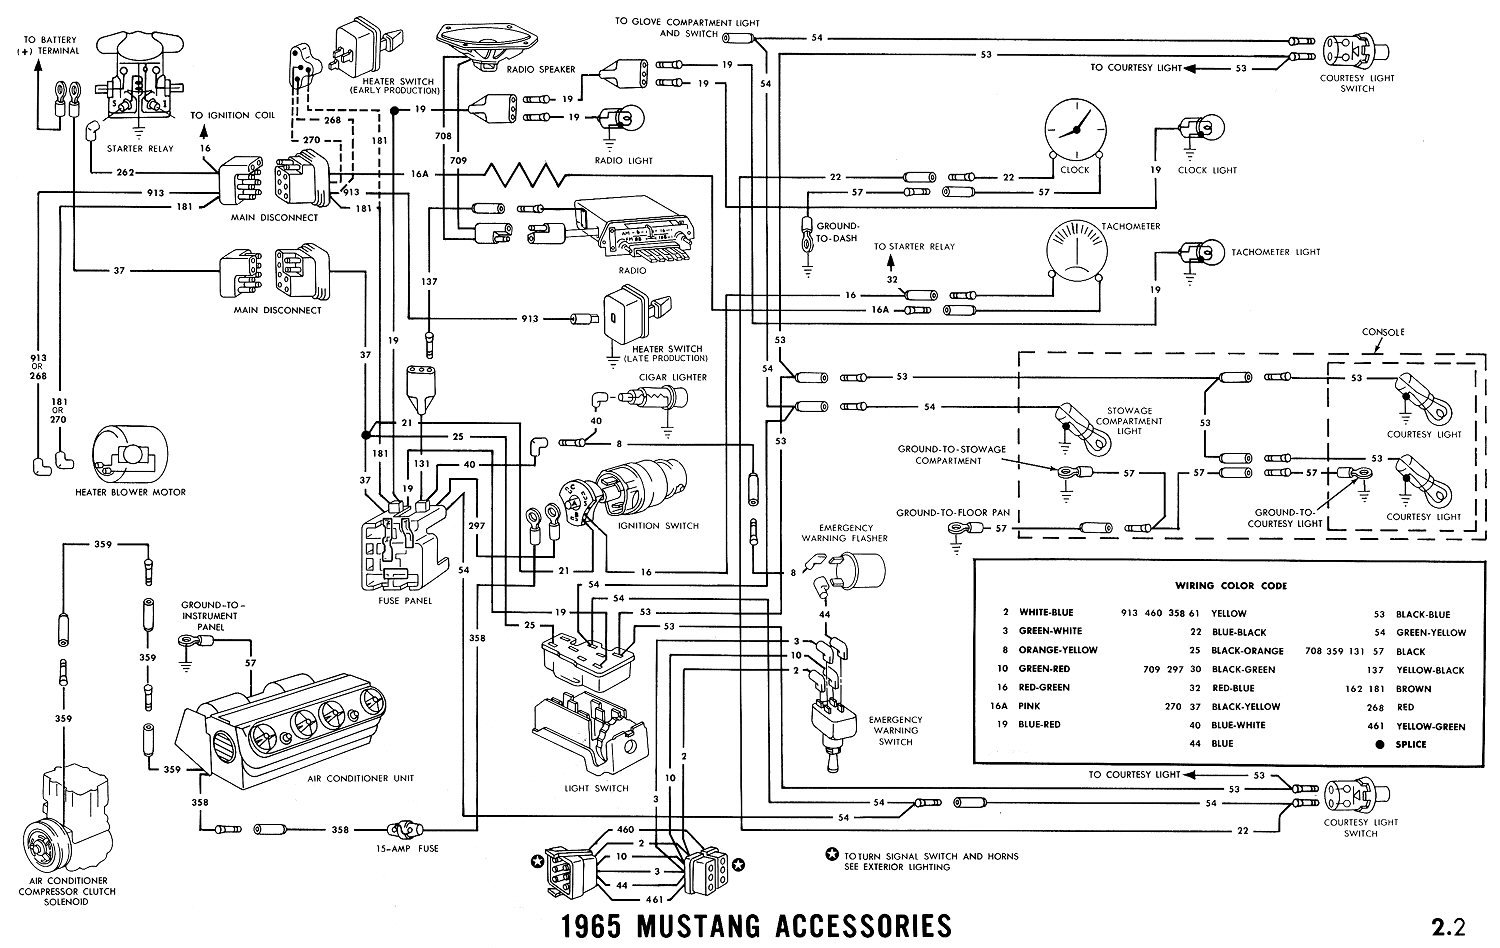 1969 Mustang Headlight Wiring Diagrams - wiring diagram cycle-tech -  cycle-tech.vaiatempo.itVai a Tempo!